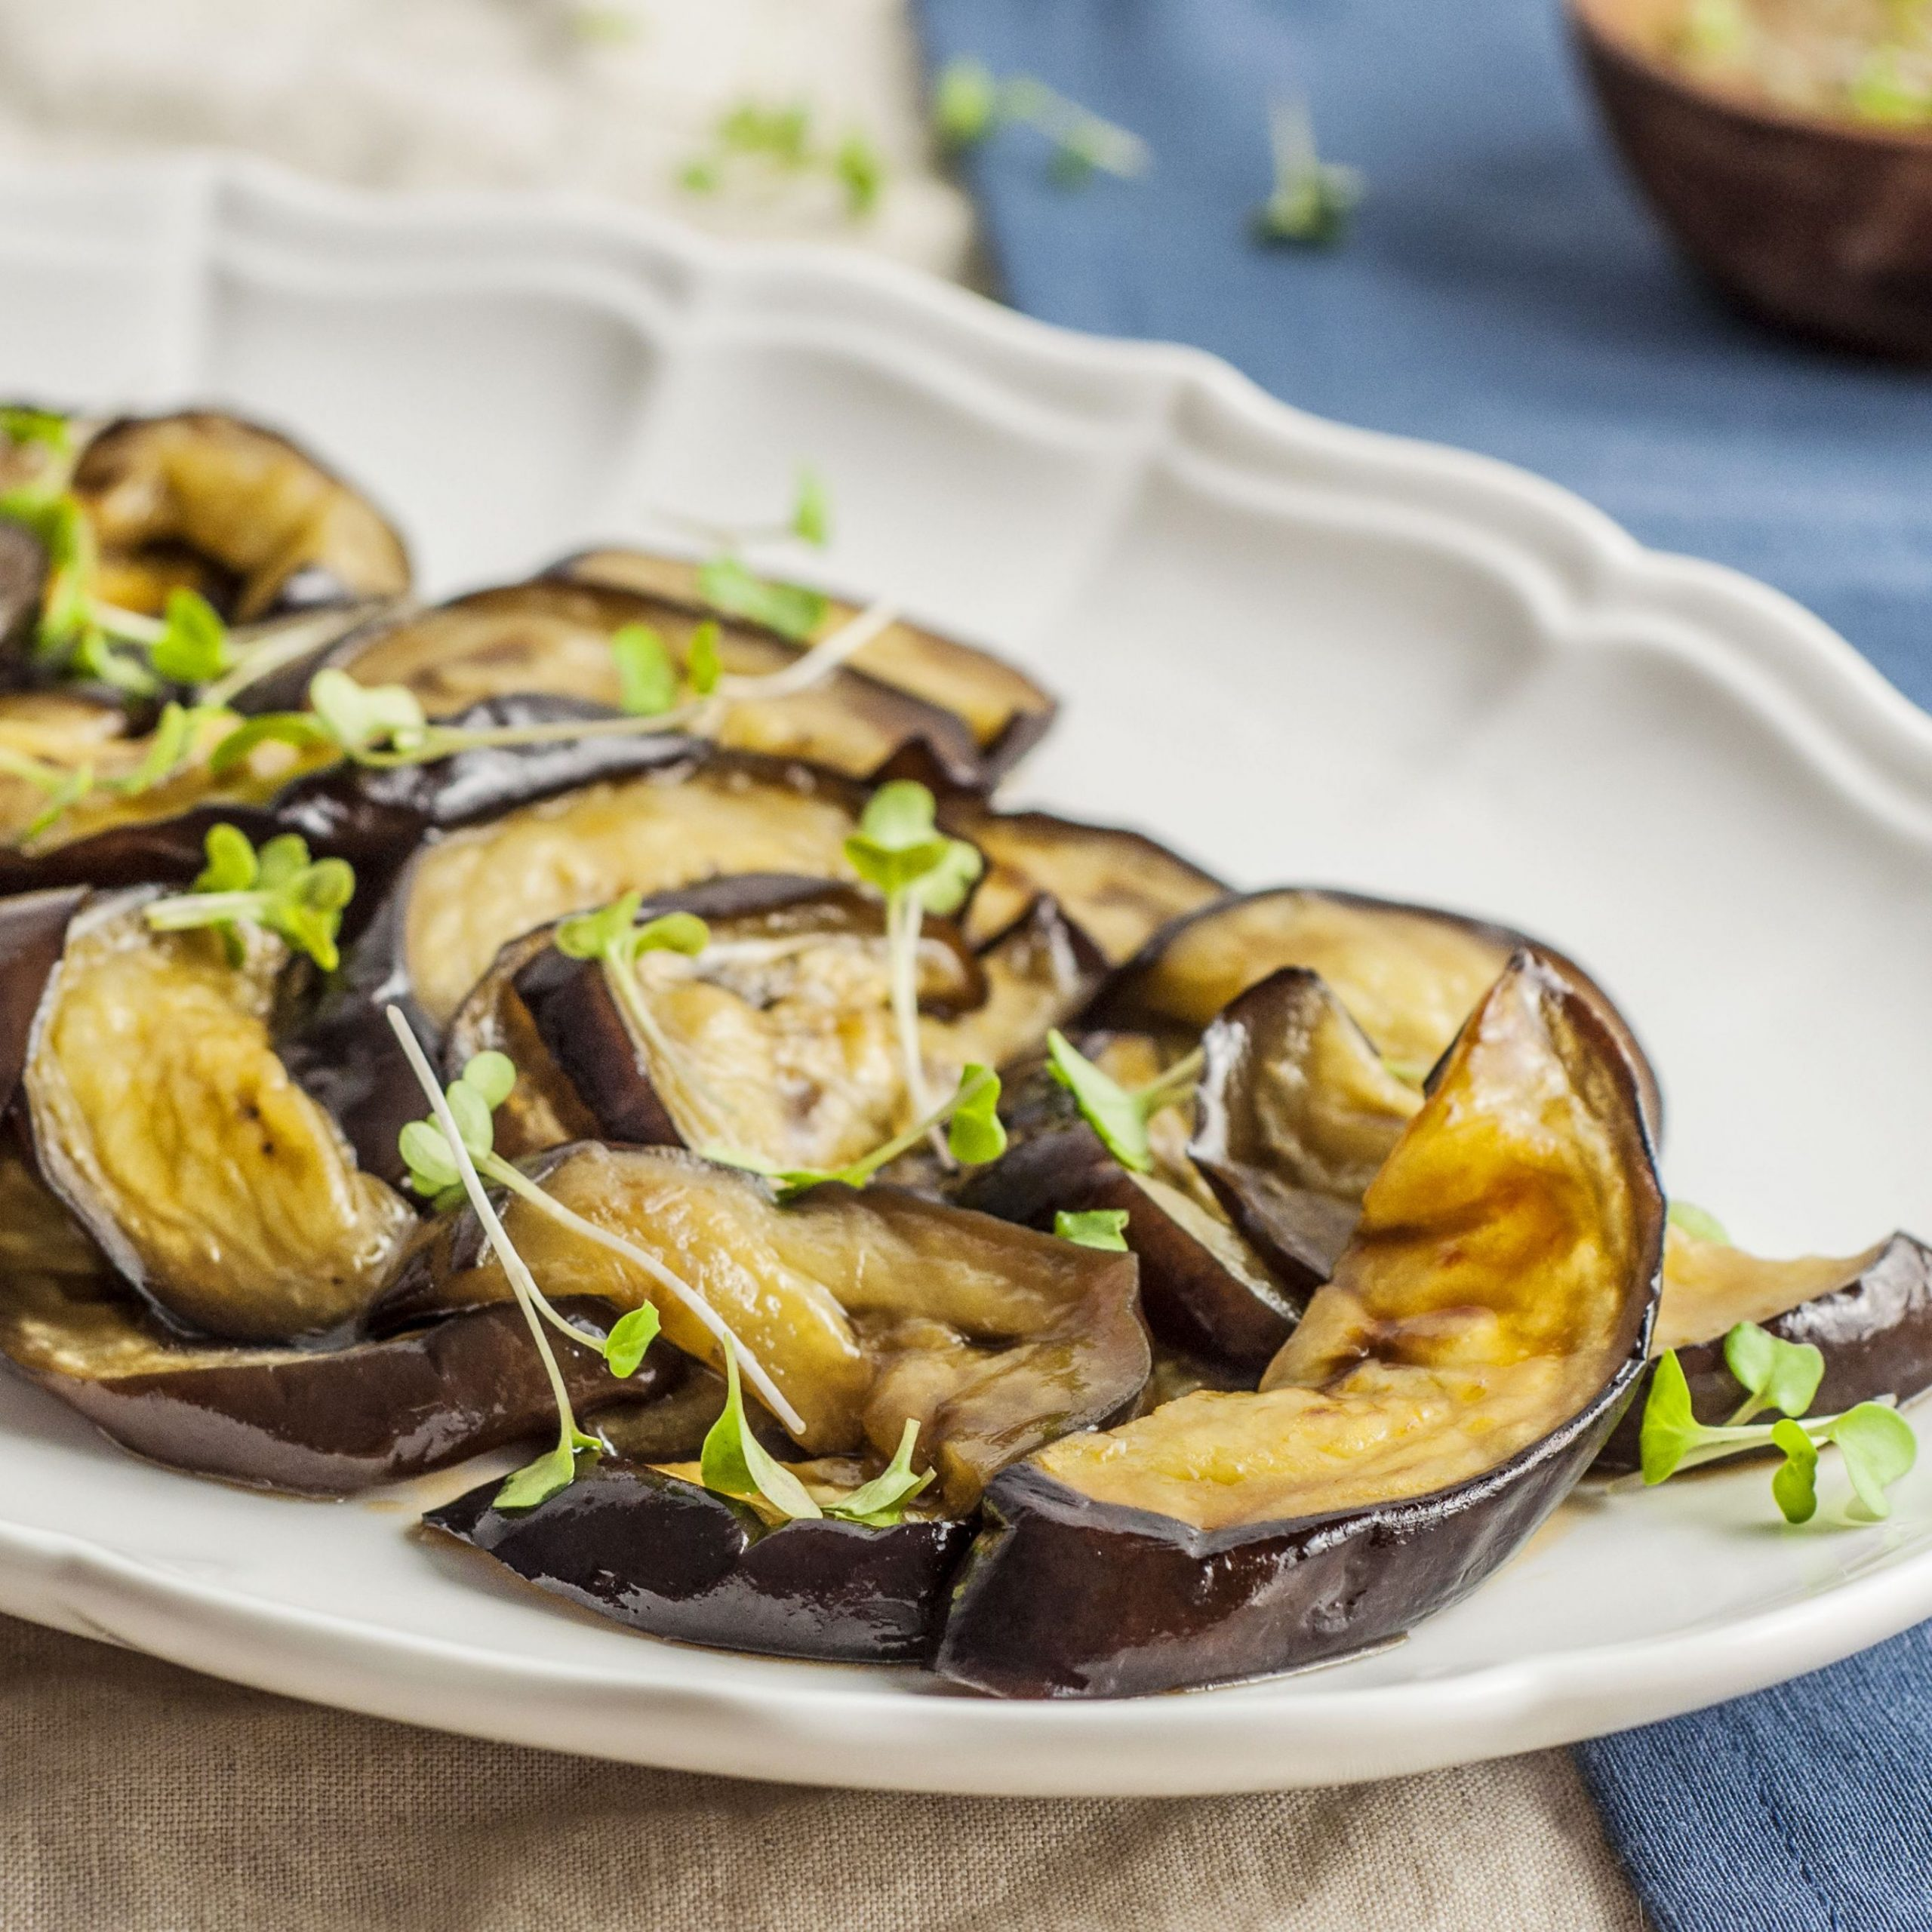 How to Make Baked Eggplant